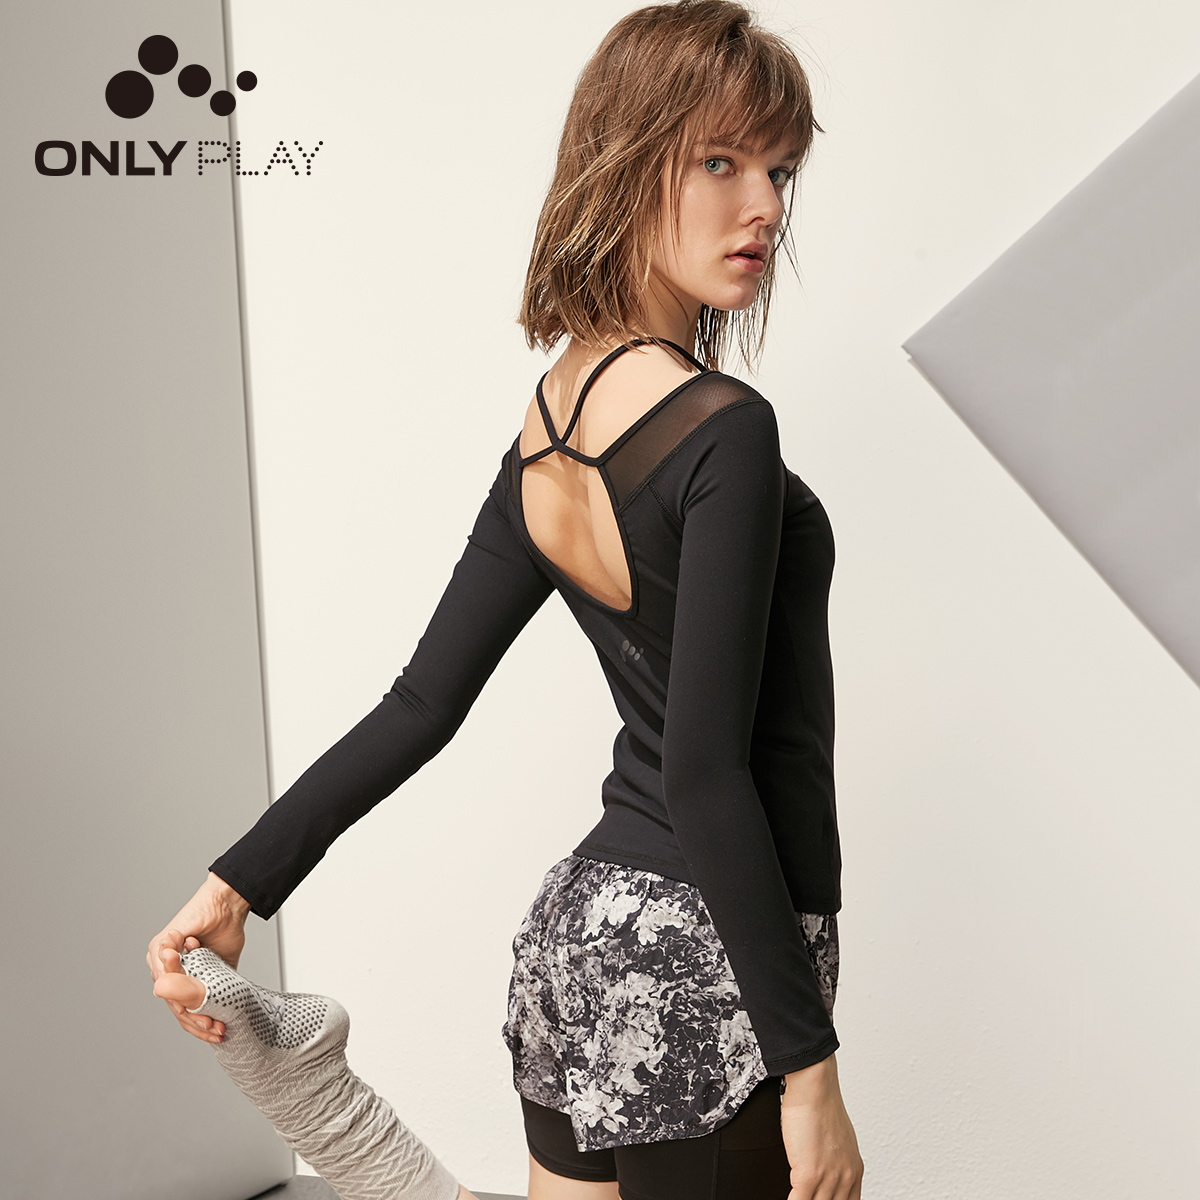 ONLY PLAY Women's Slim Fit Long-sleeved Gauzy T-shirt |119102506